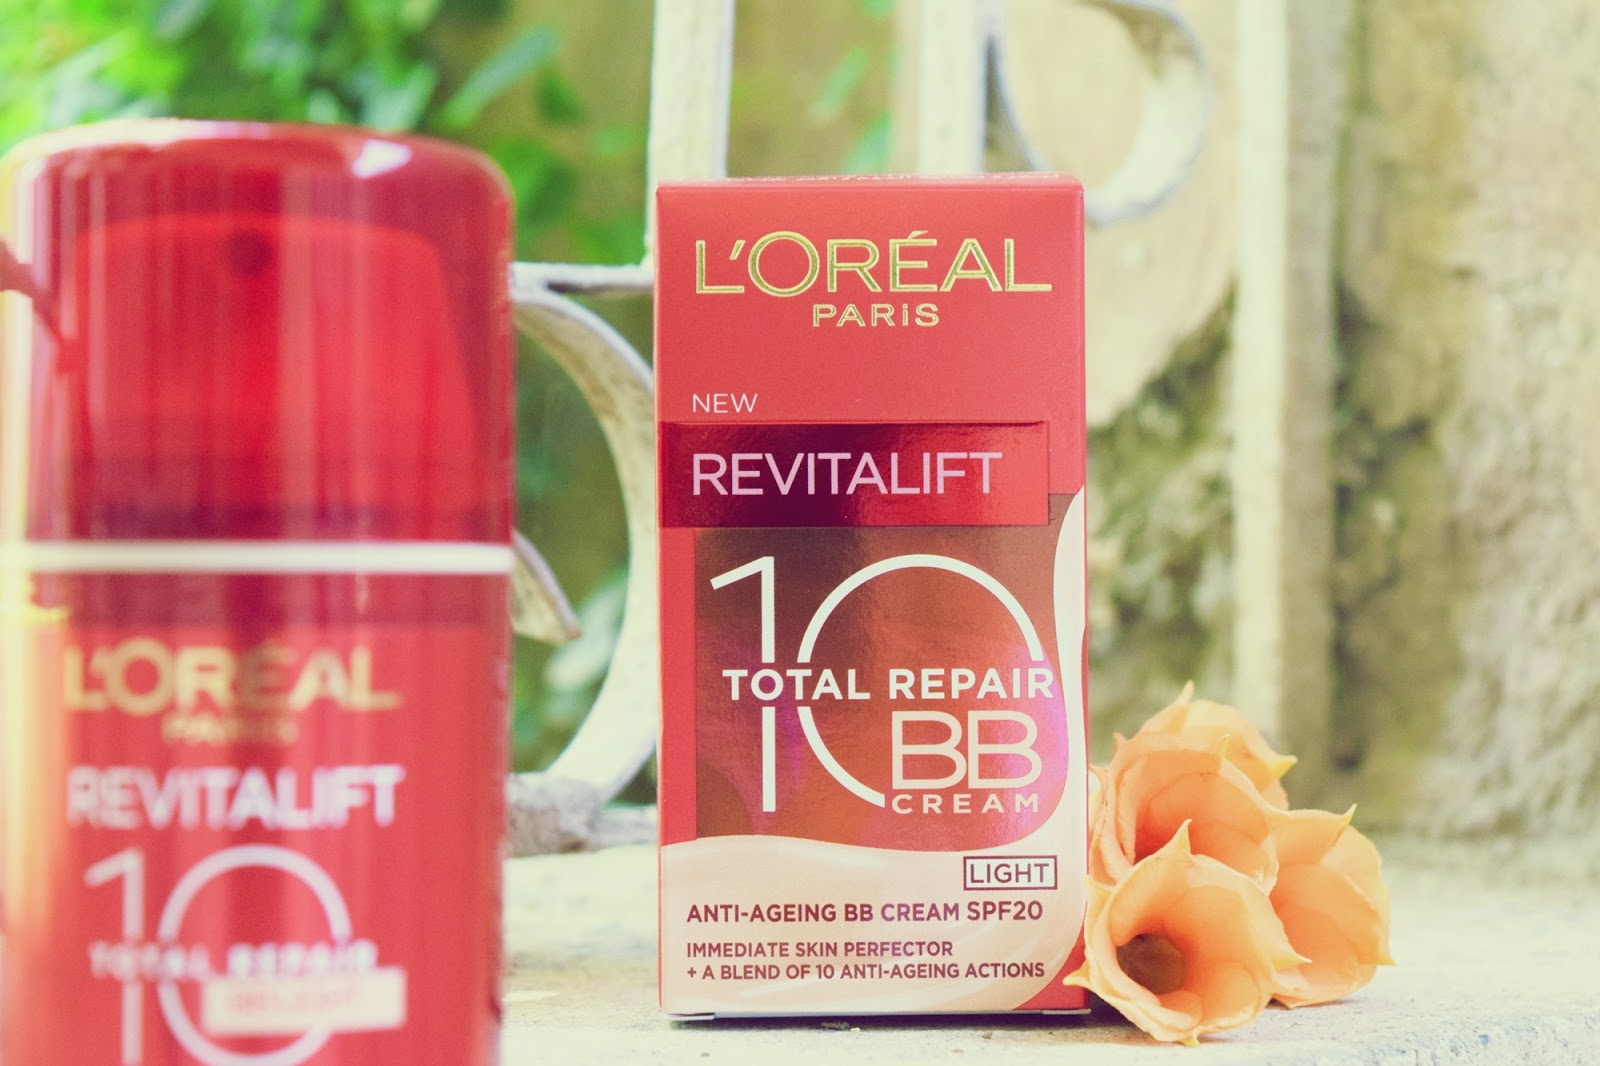 L'Oreal Revitalift Total Repair BB Cream